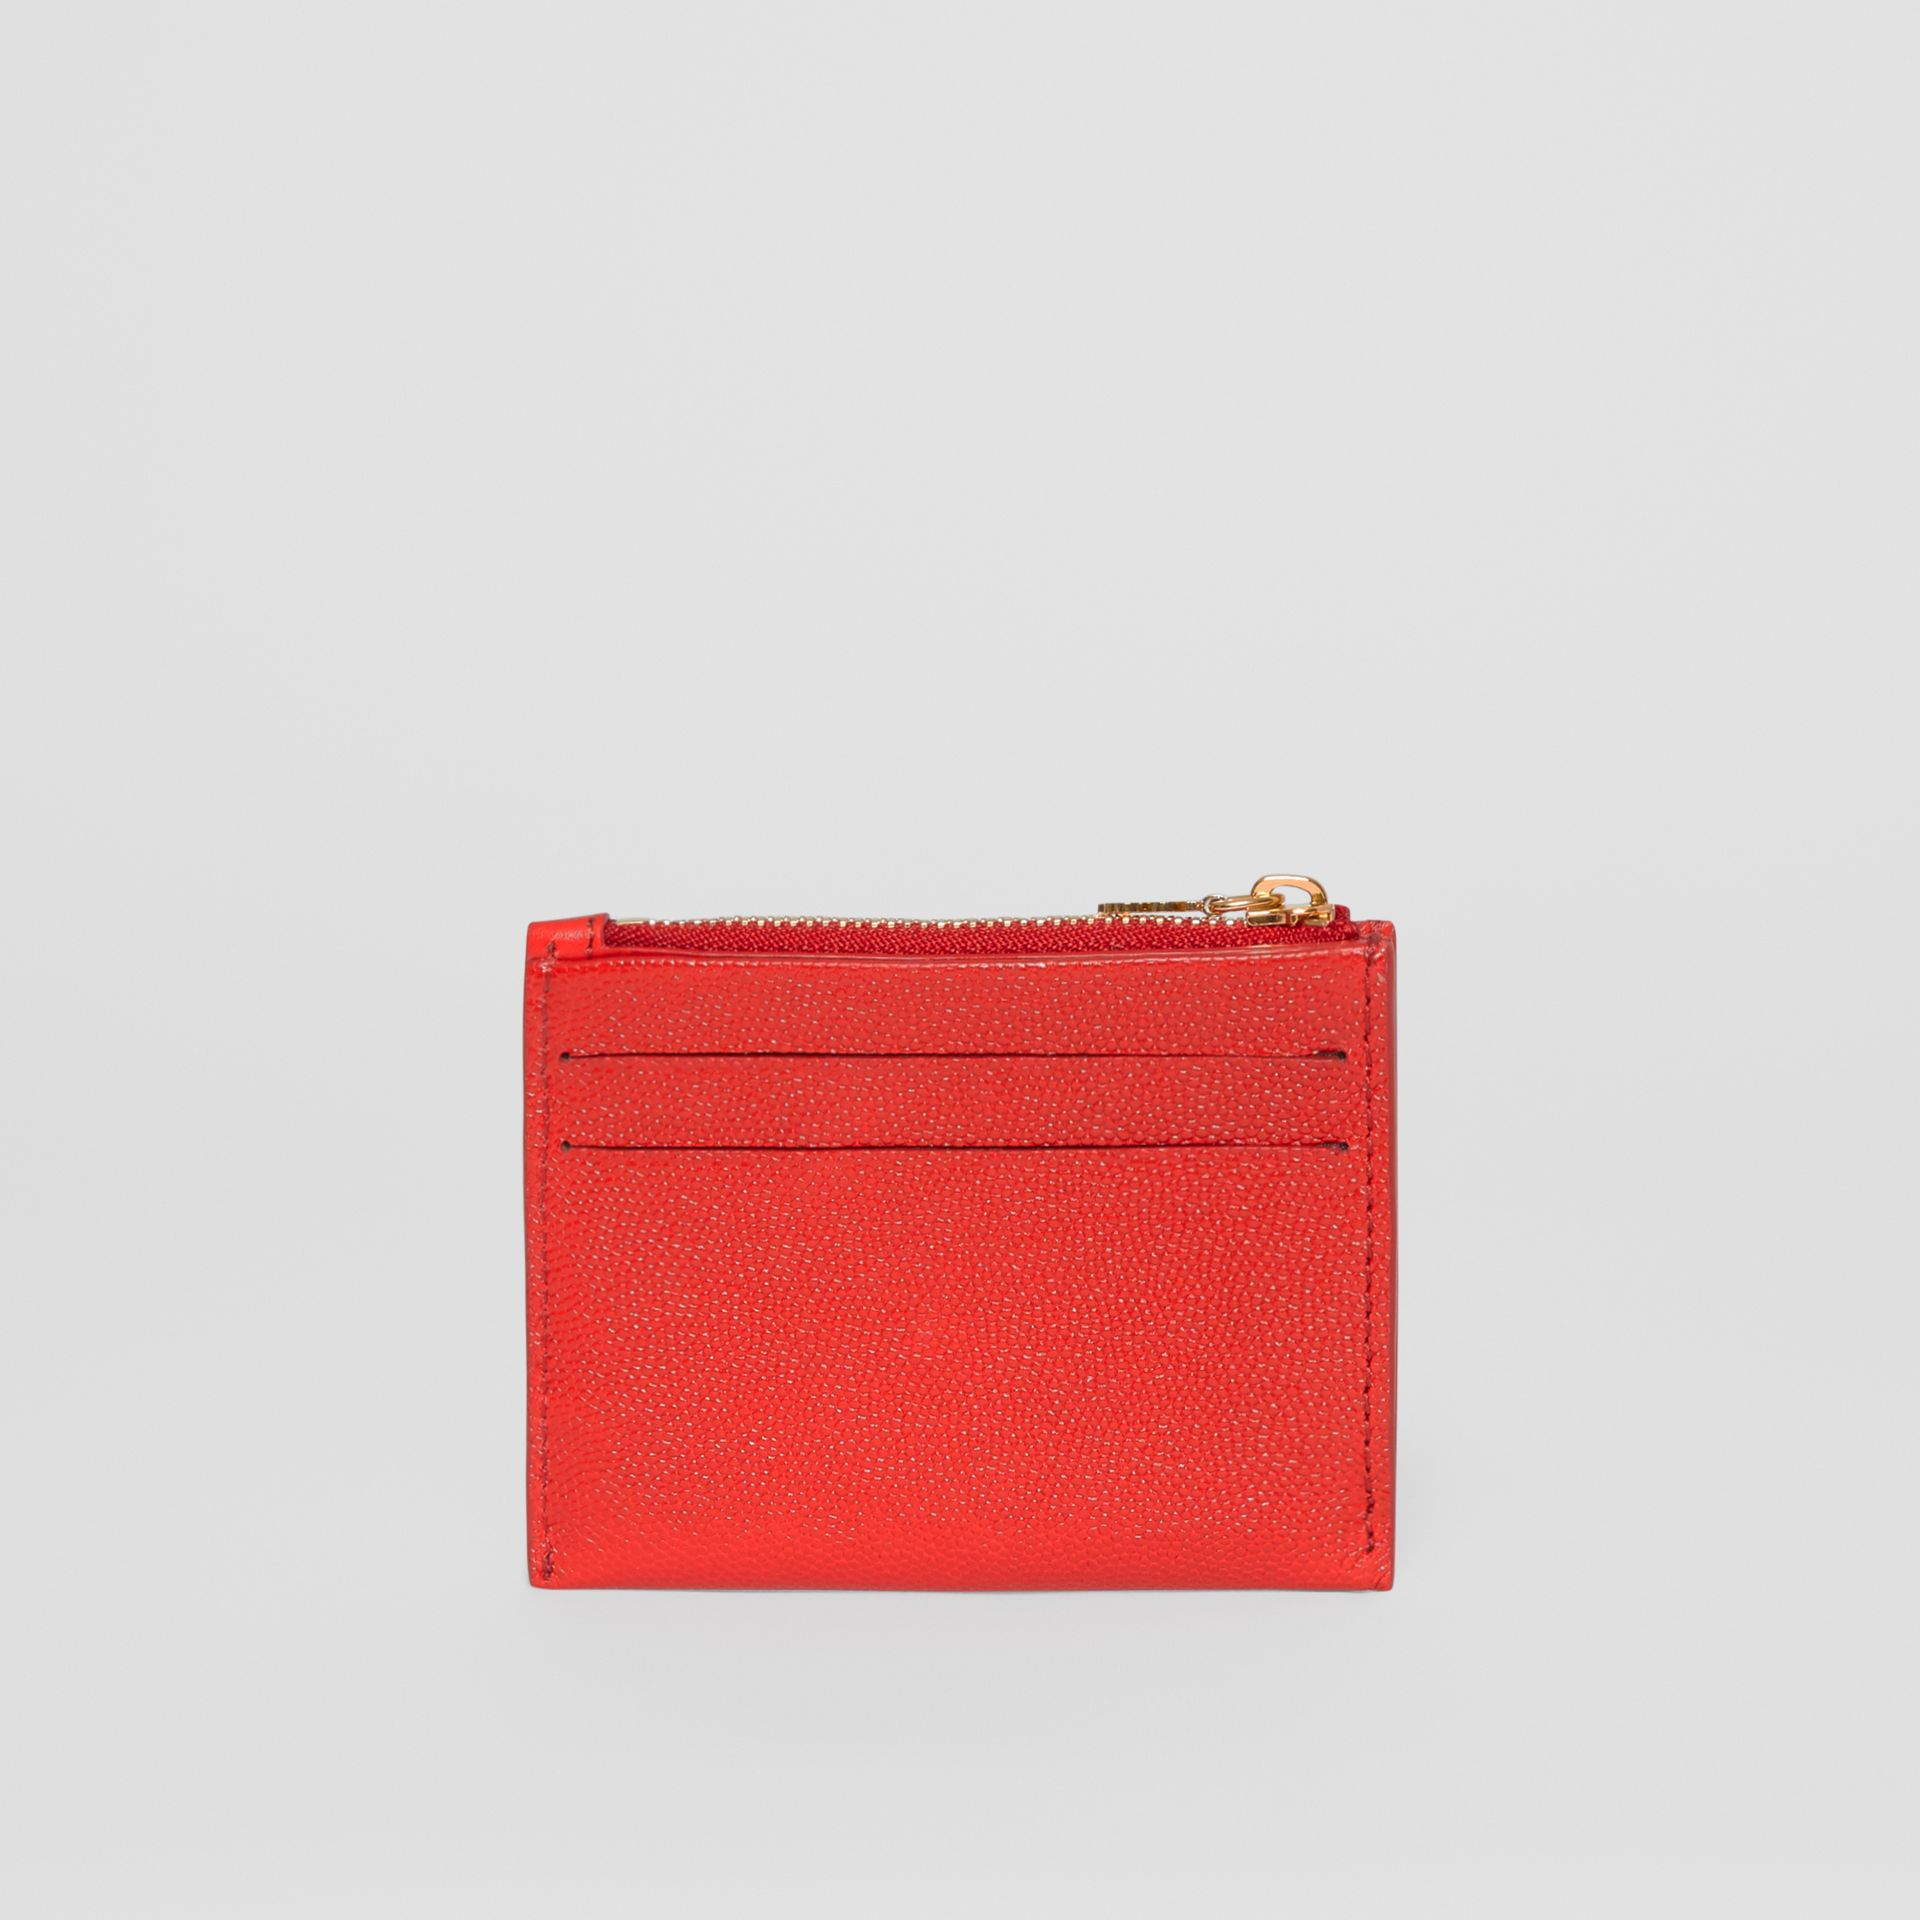 Monogram Motif Grainy Leather Zip Card Case in Bright Red - Women | Burberry - gallery image 4